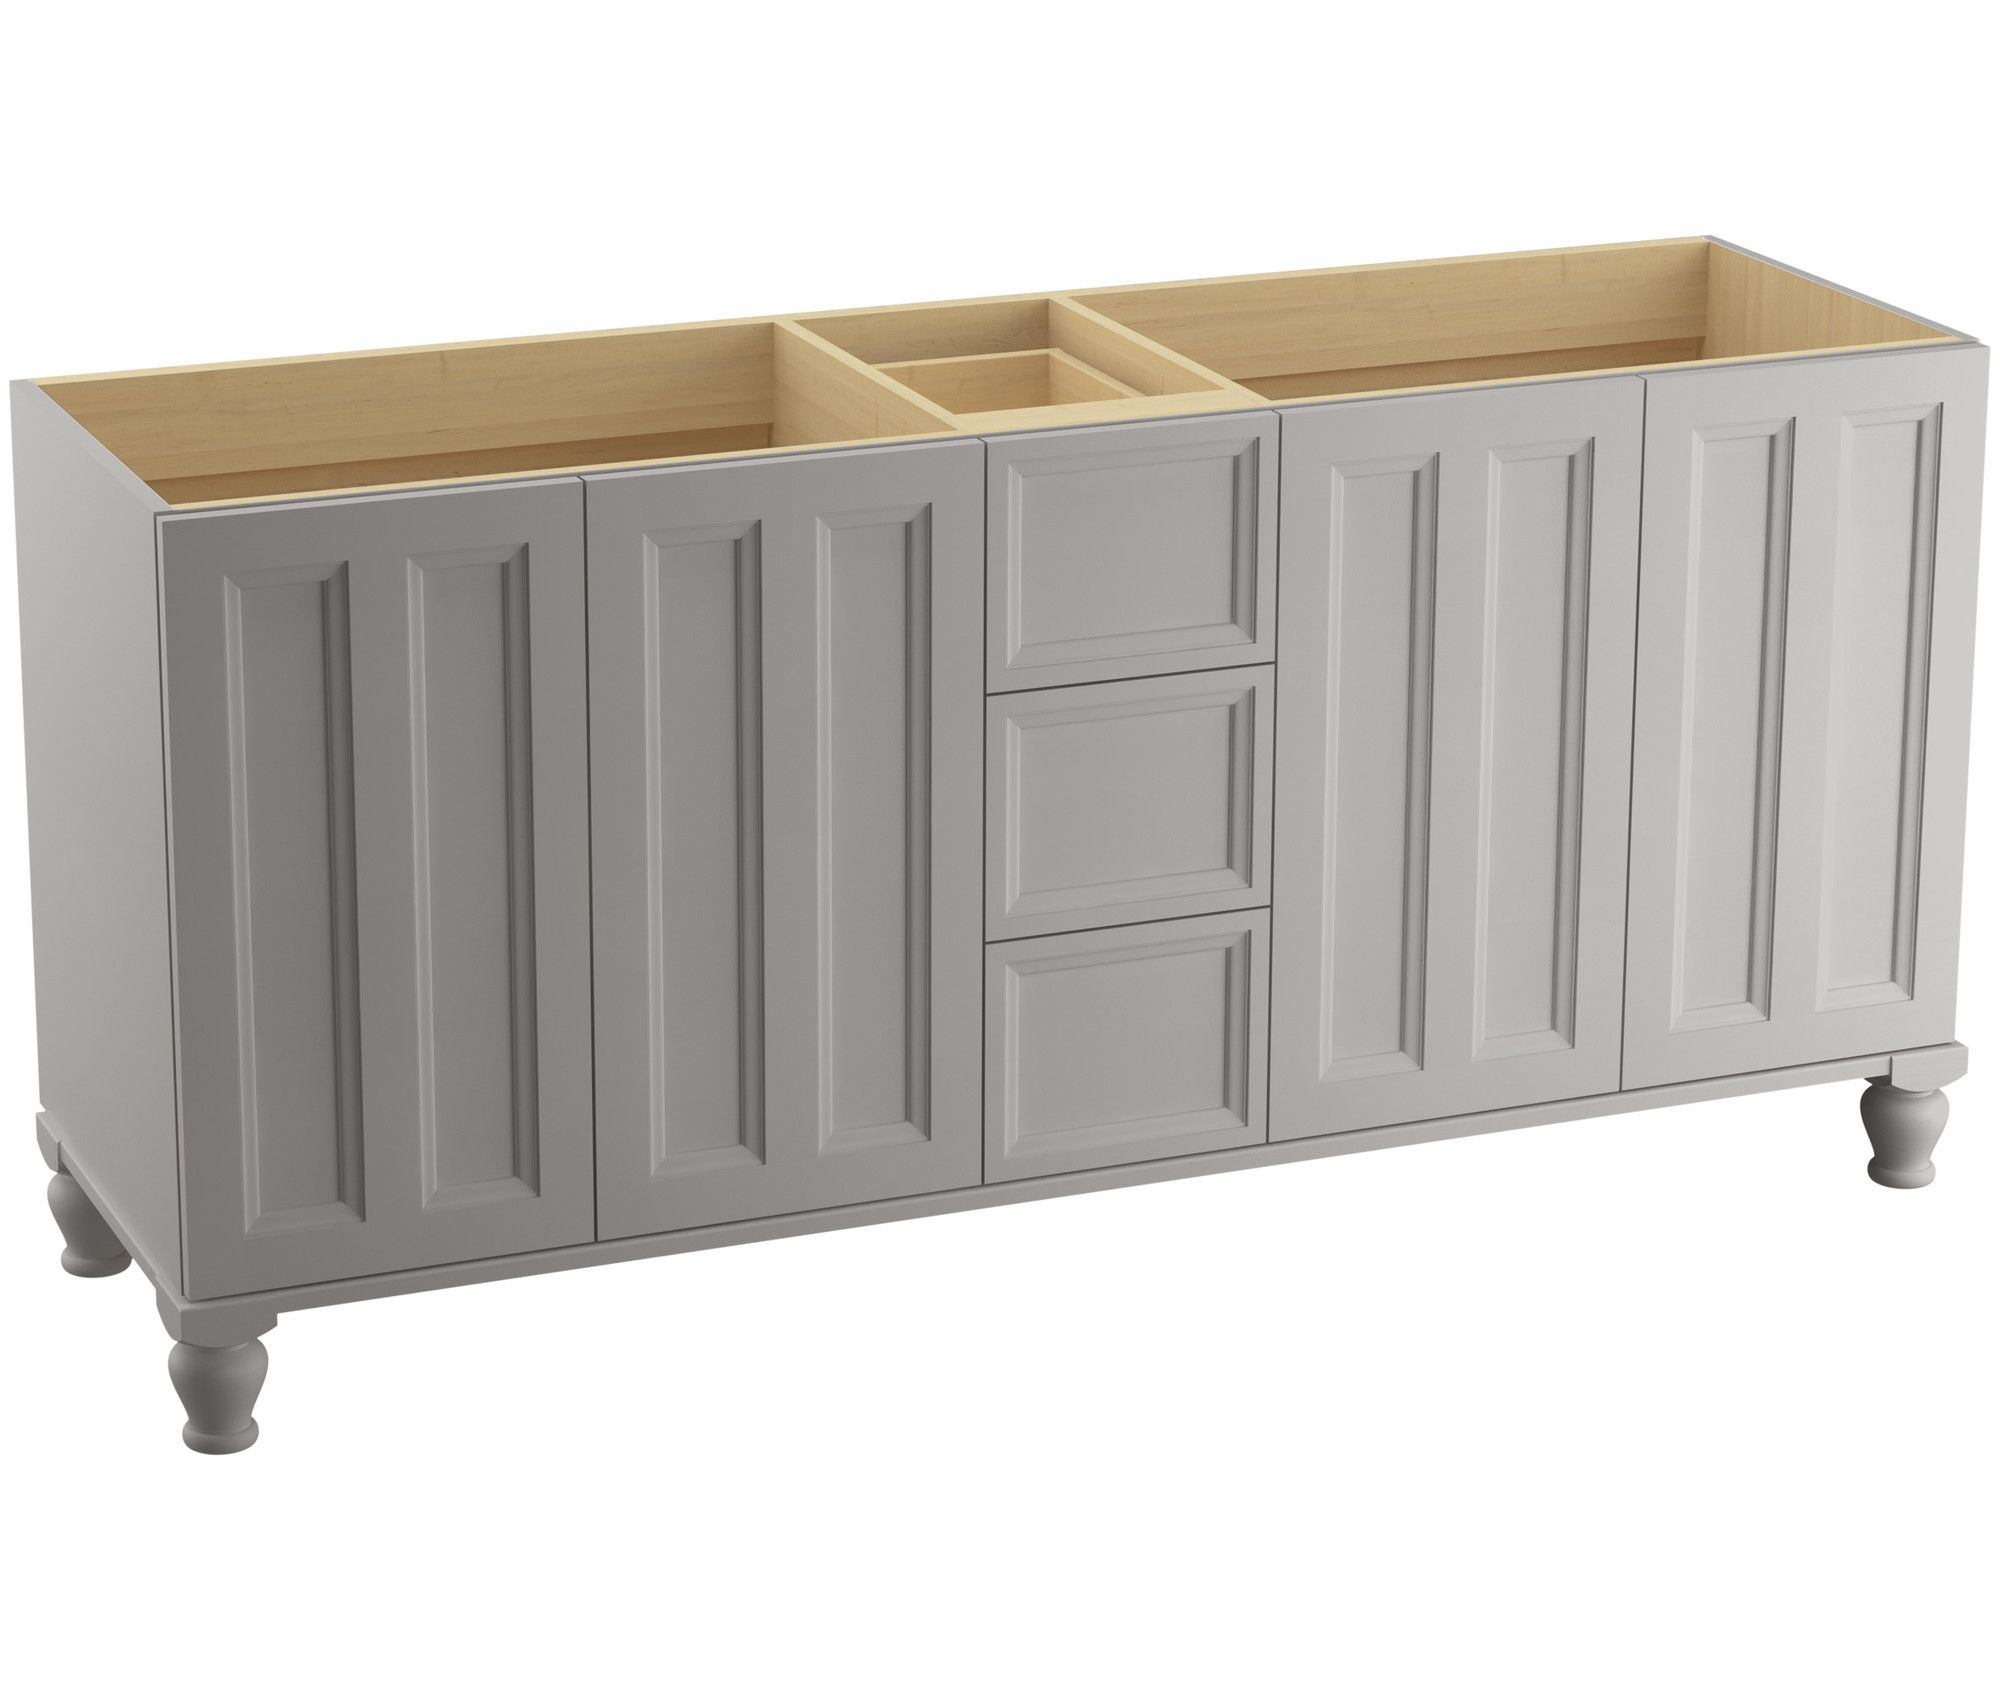 Kohler Damask Vanity Cabinet Only With Split Top Drawers   Free Mohair Grey  Fixture Vanity Double